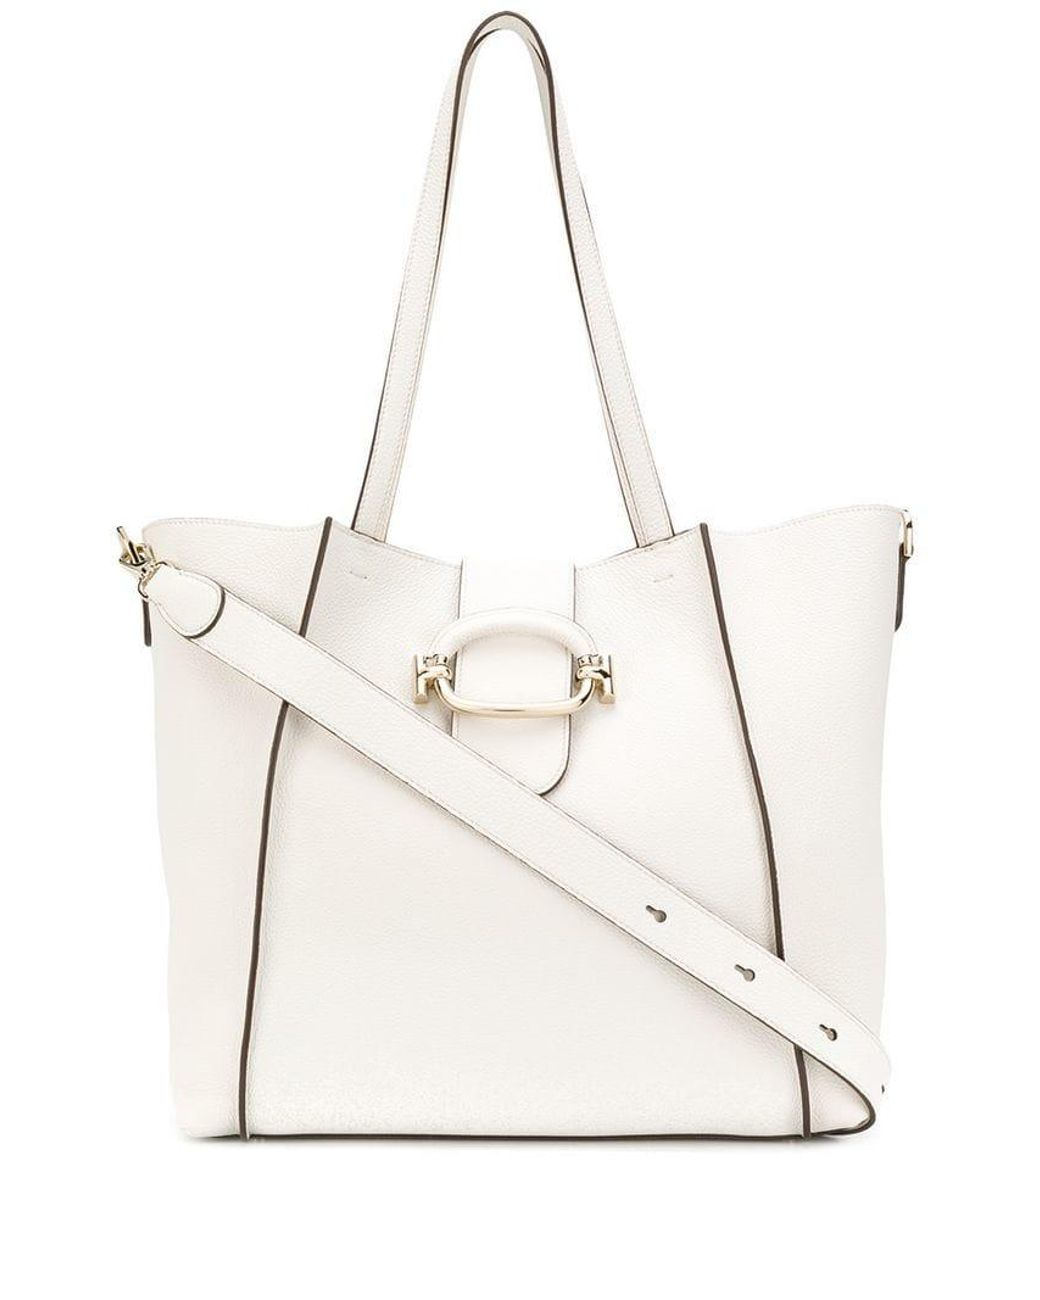 ad00cd2cfb5 Lyst - Tod's Double T Shopping Bag in White